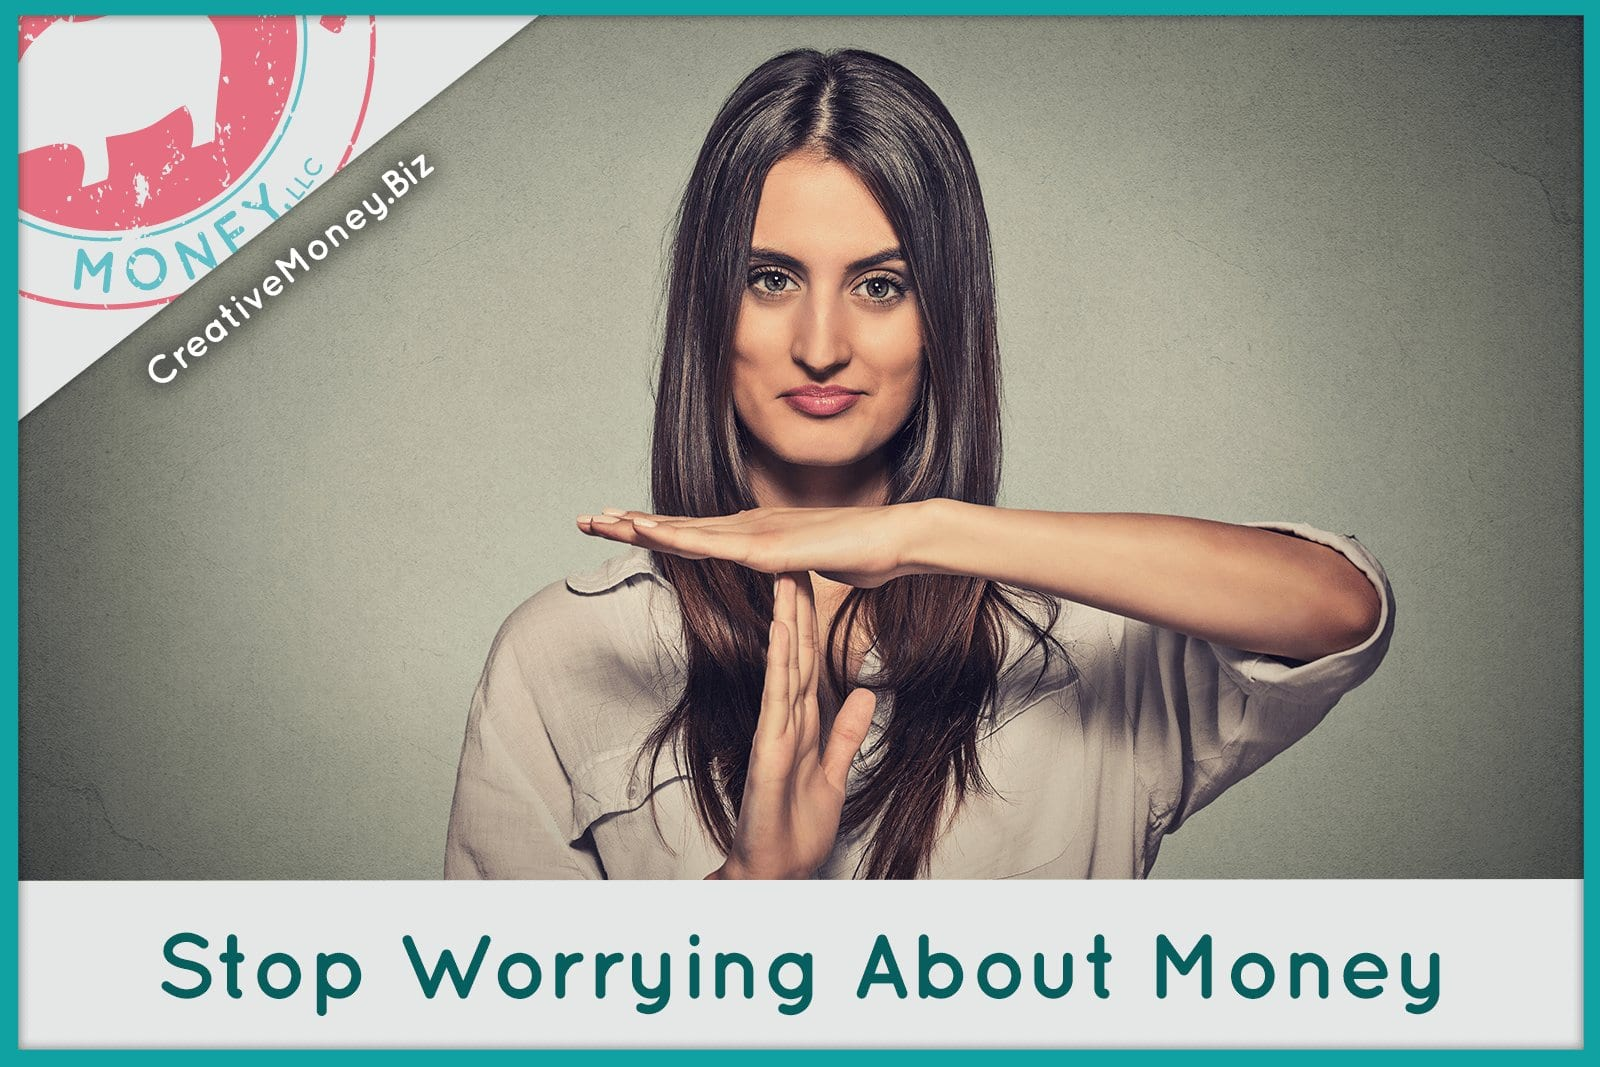 Worrying about money